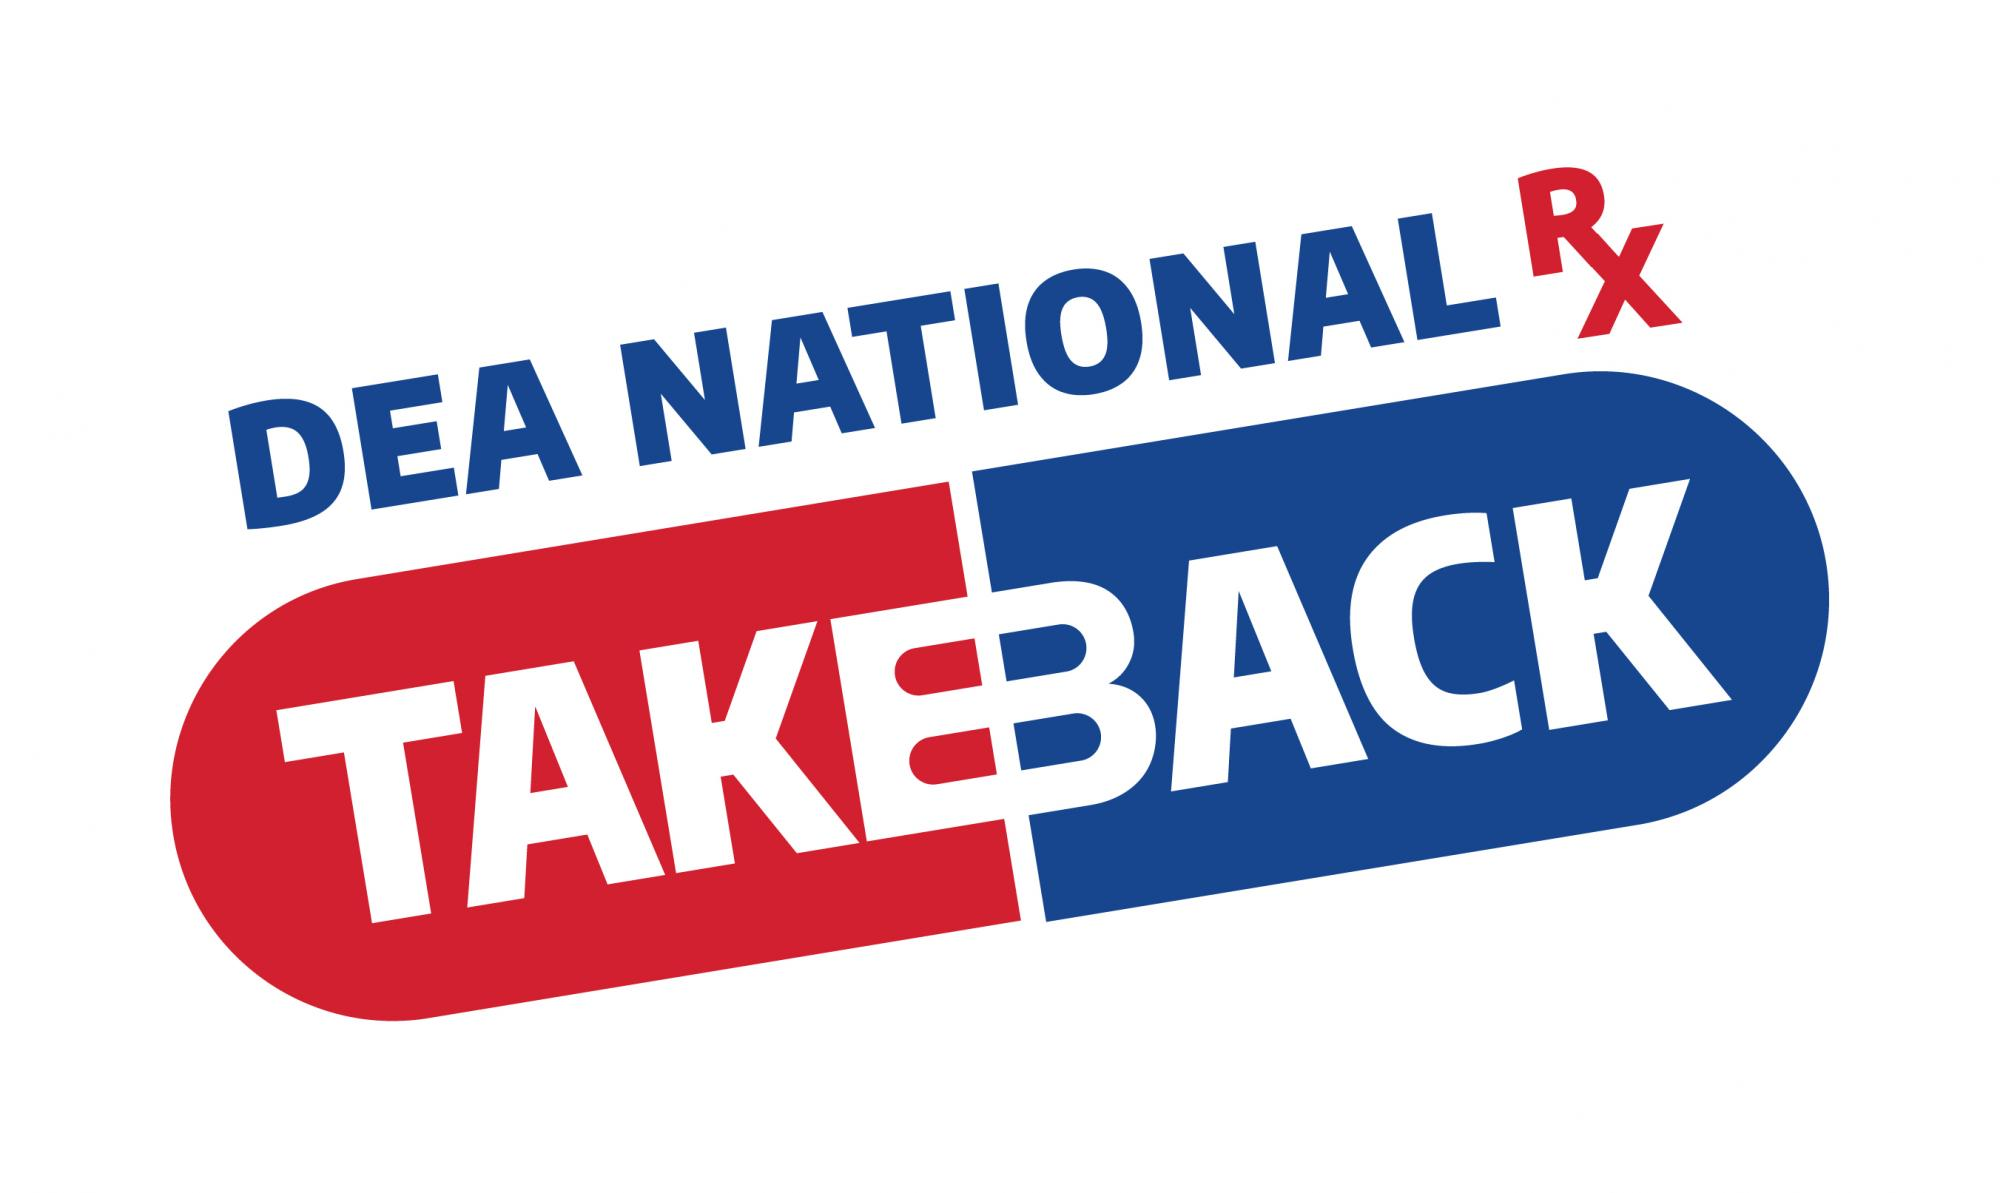 DEA National Takeback